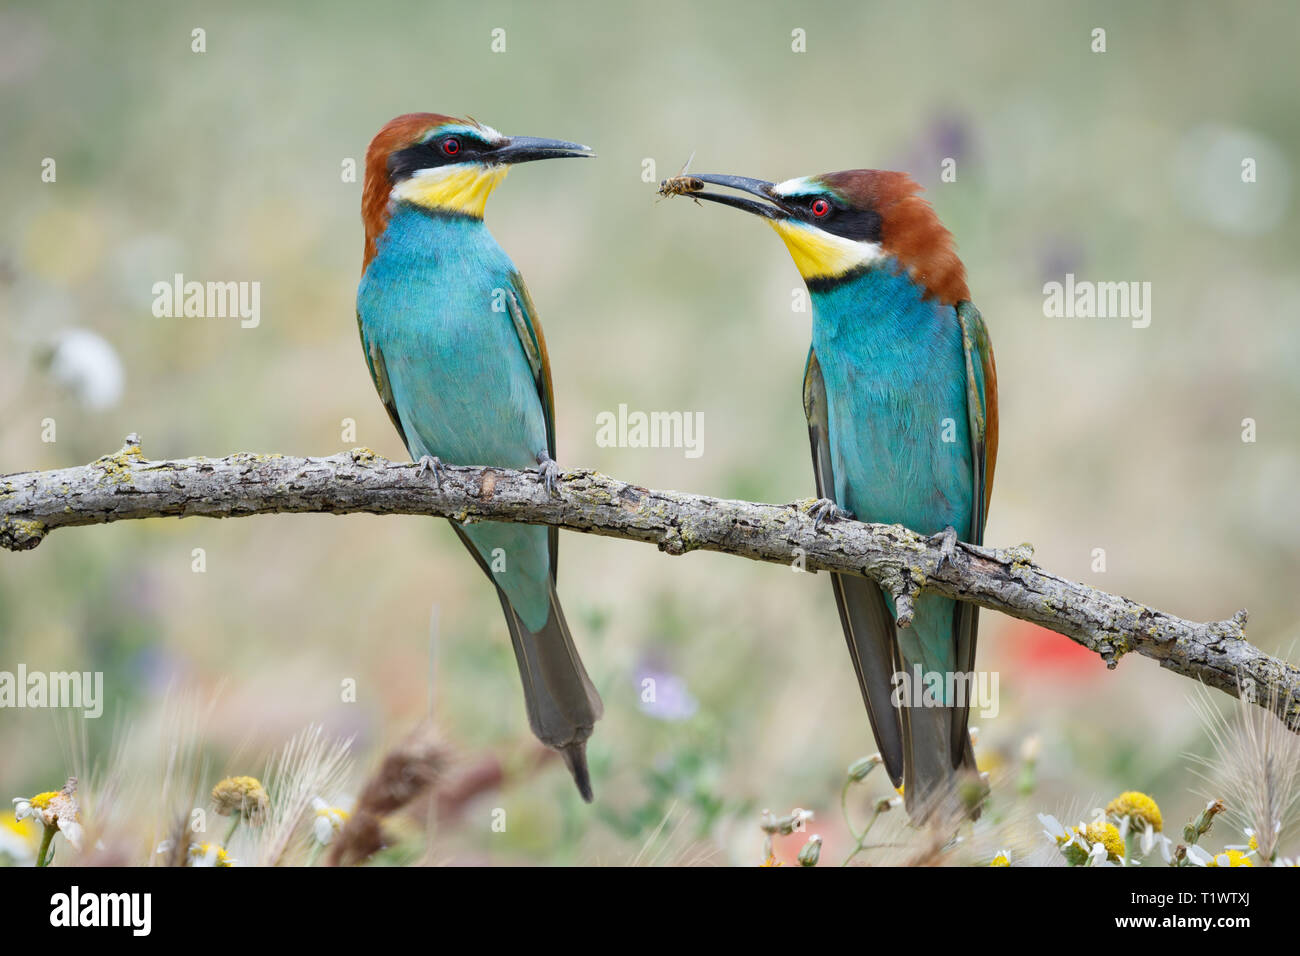 European Bee-eater (Merops apiaster), adult male offering insect prey to female, perched on branch, Lleida Steppes, Catalonia, Spain Stock Photo